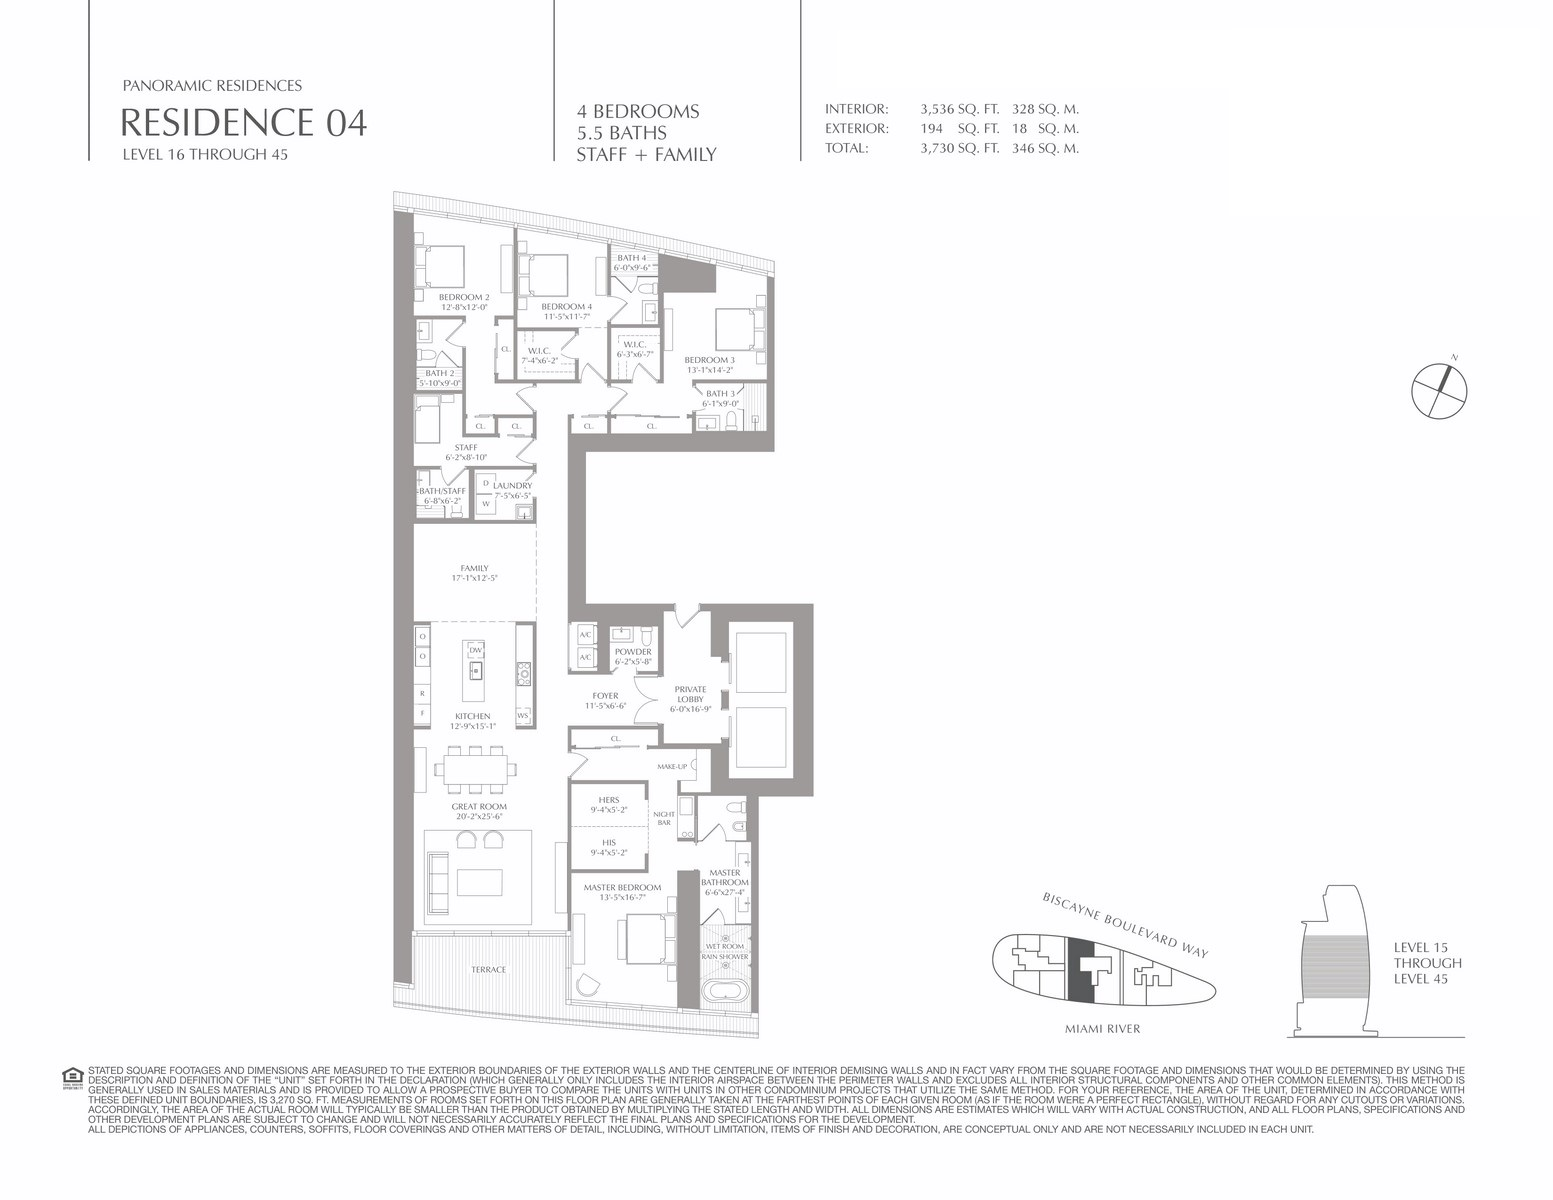 Aston Martin Residences - Floorplan 21